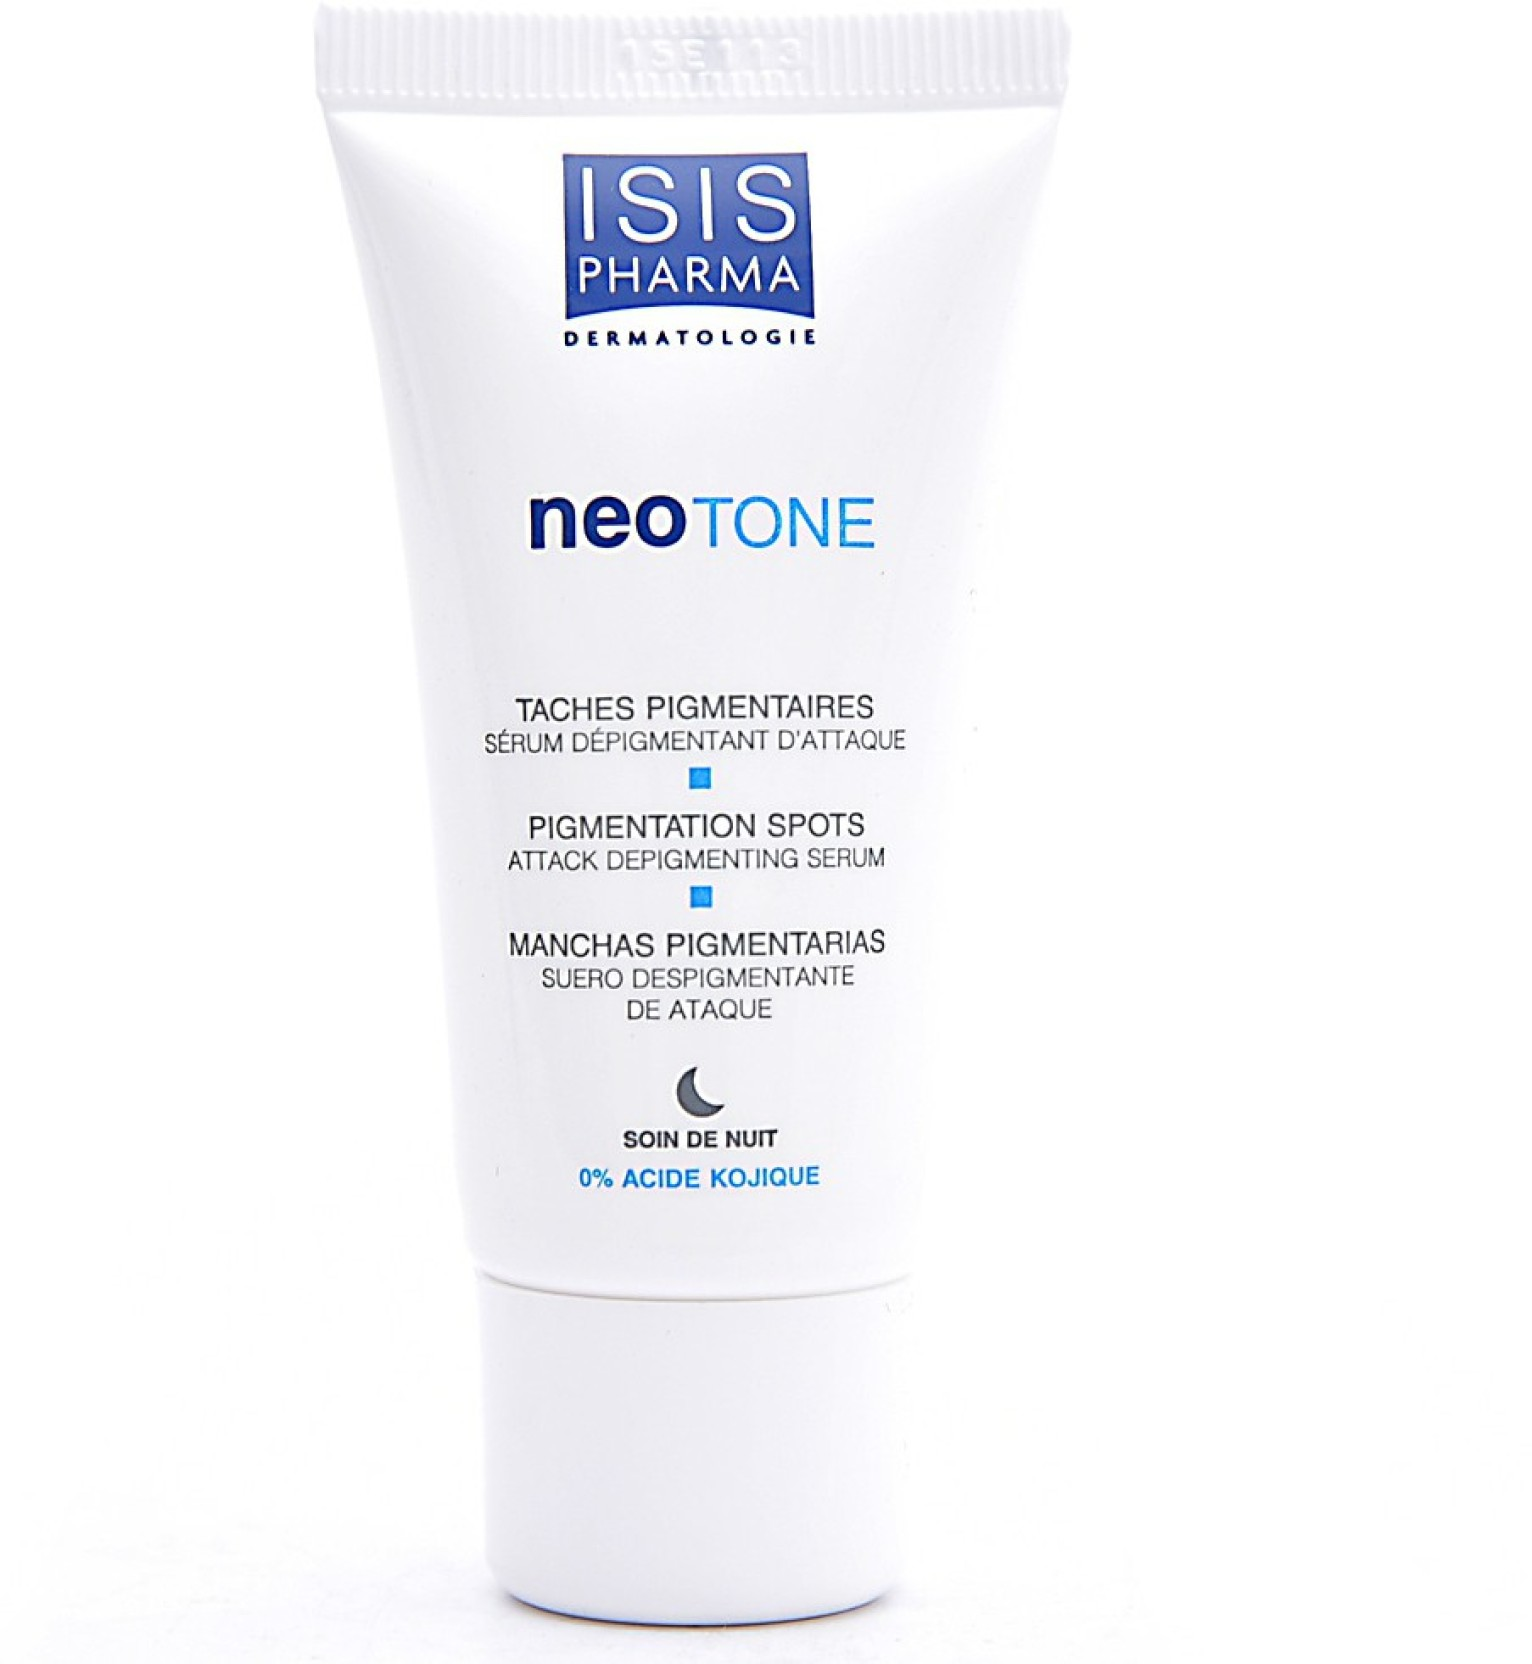 ISIS PHARMA NEOTONE PIGMENTATION SPOTS - SERUM Christmas presents